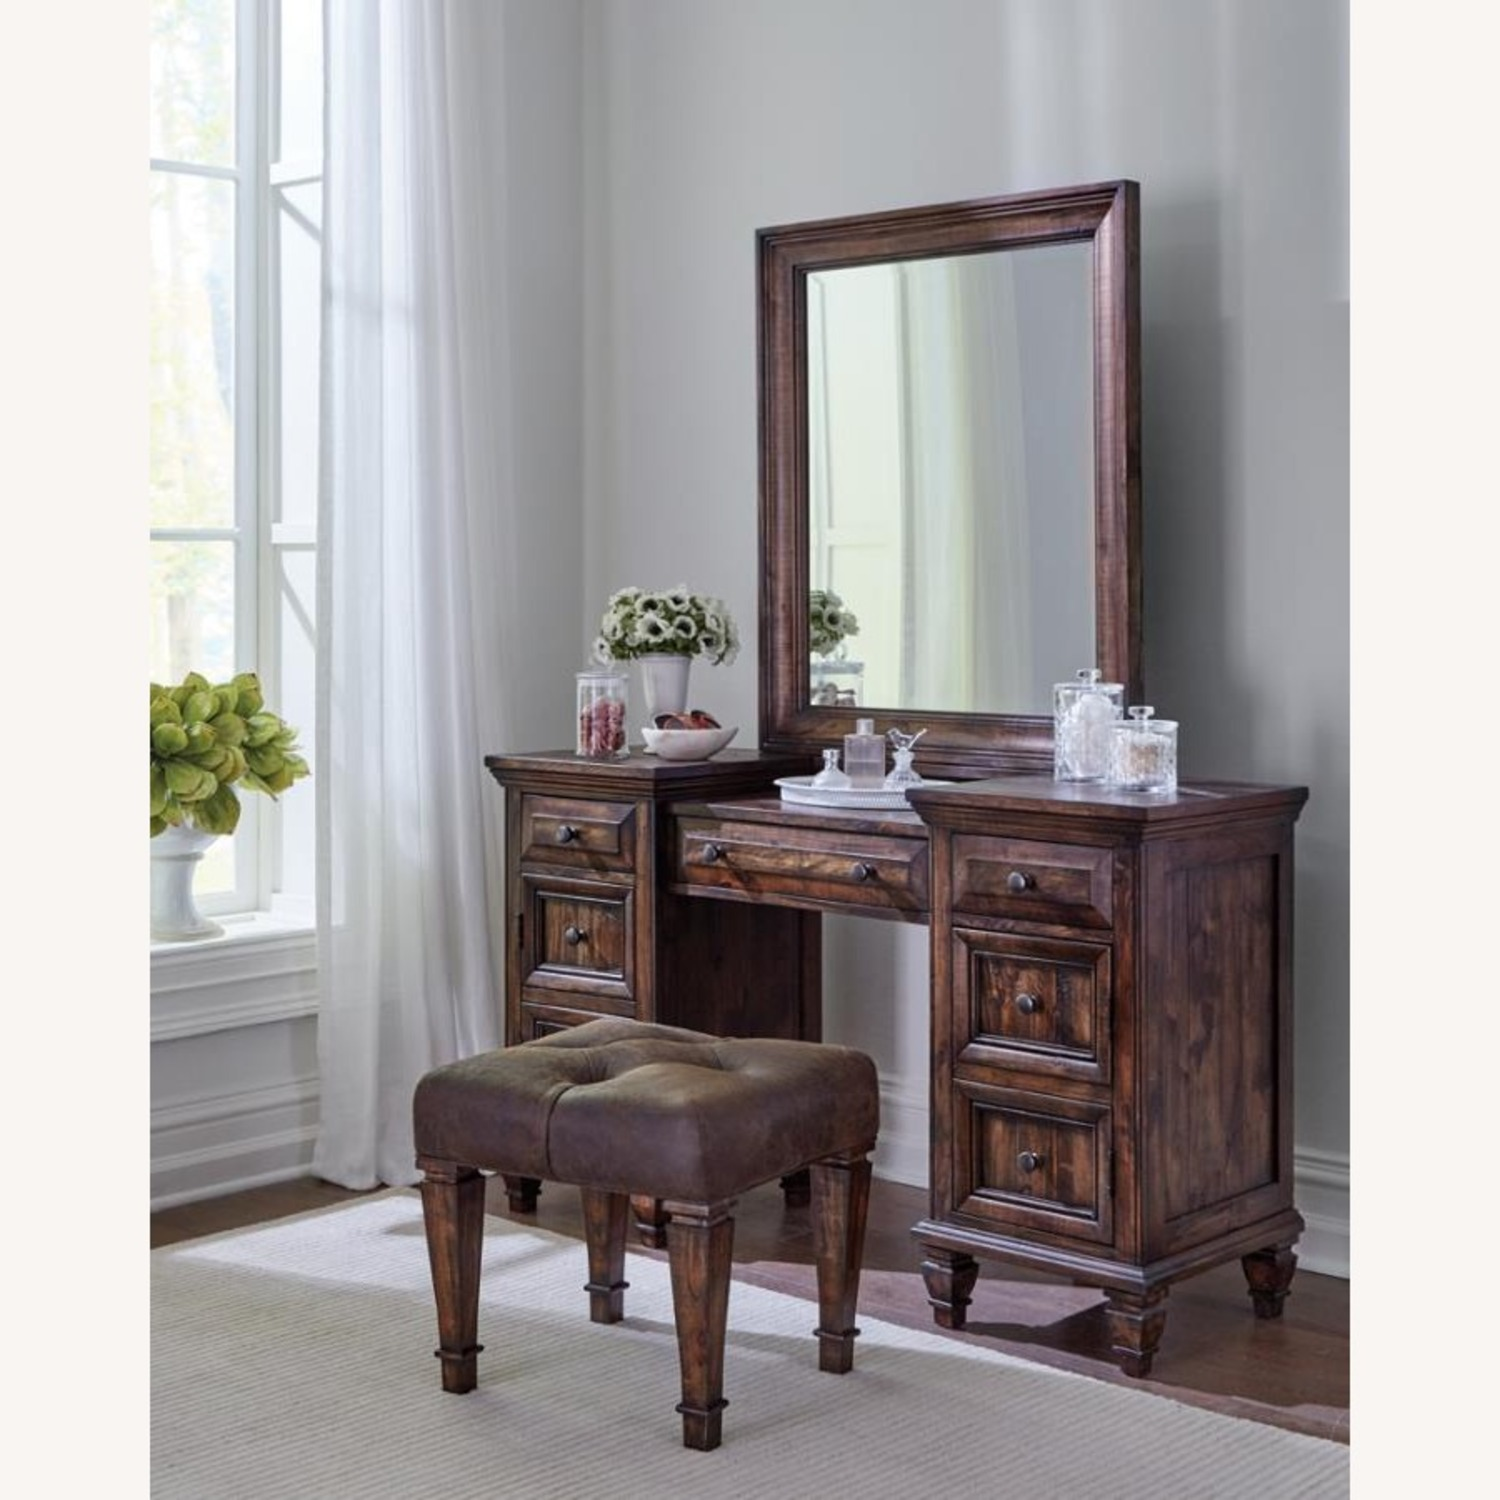 Vanity Mirror In Weathered Burnished Brown Finish - image-1